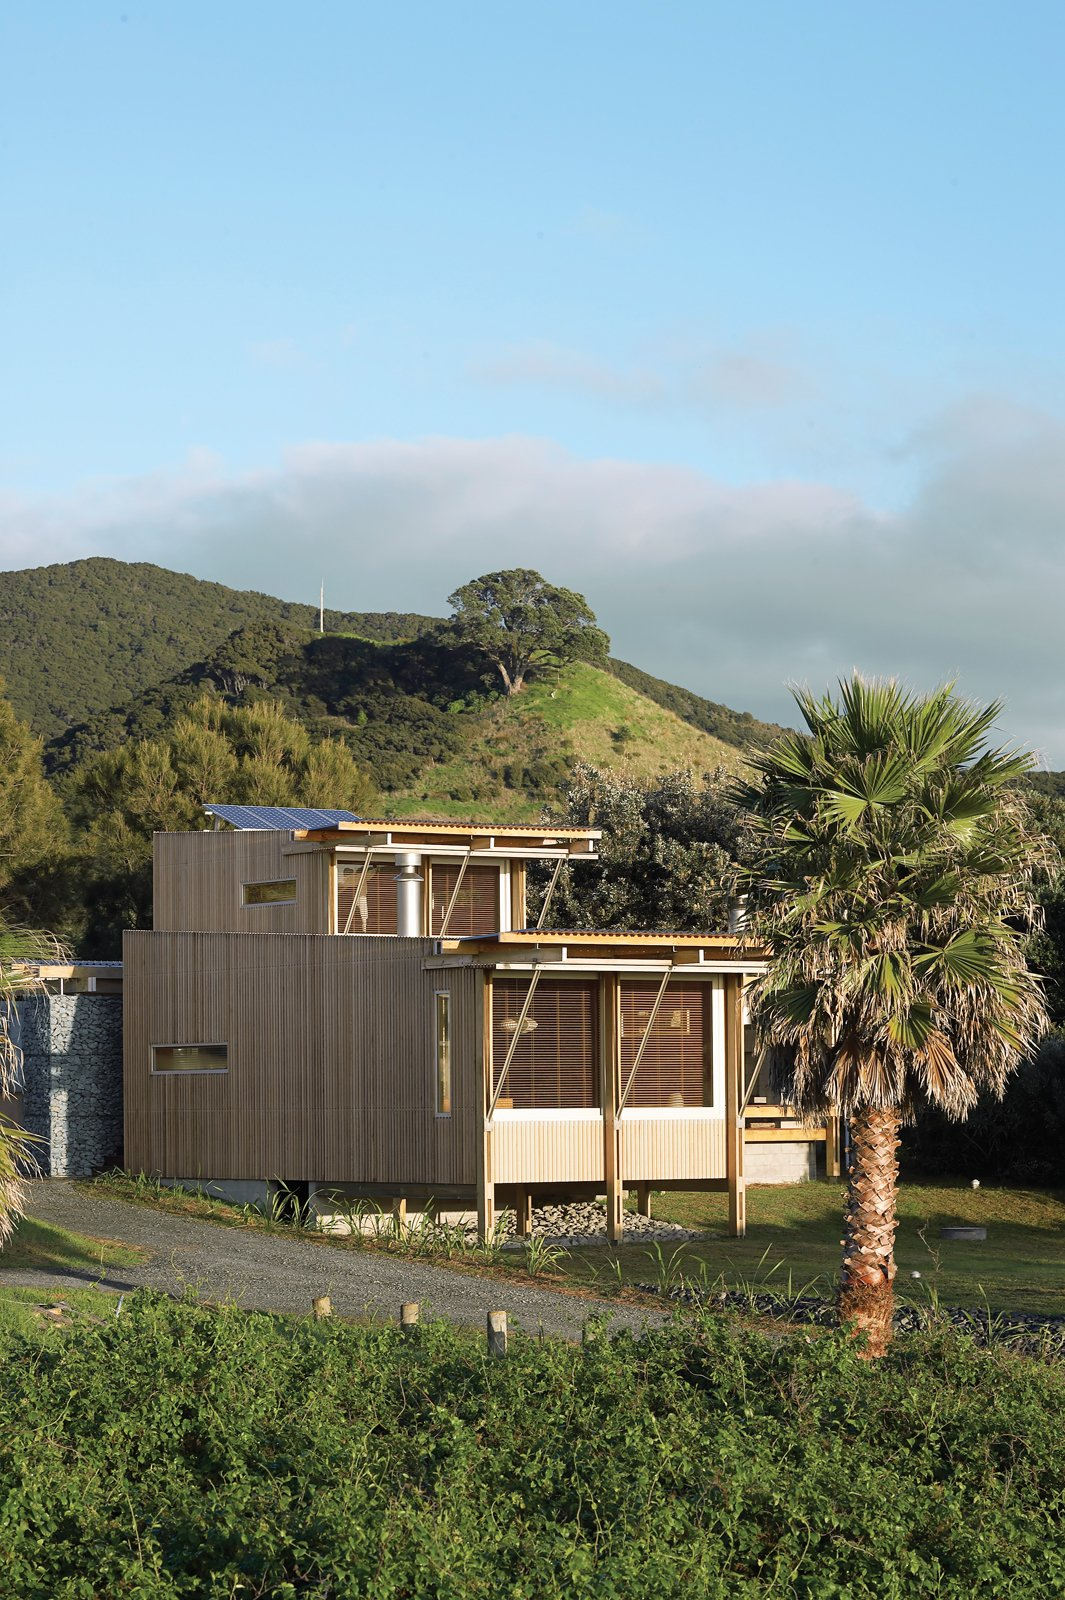 Exterior, House Building Type, Wood Siding Material, Flat RoofLine, and Tile Roof Material Designed for off-grid functionality out of necessity, the self-sufficient bach that Herbst Architects designed for their friend is a stellar getaway on New Zealand's Great Barrier Island. Clad in cedar, the modestly sized abode embraces outdoor living and views of the Pacific Ocean.  Photos from New Zealand Vacation Home Designed Completely Off the Grid